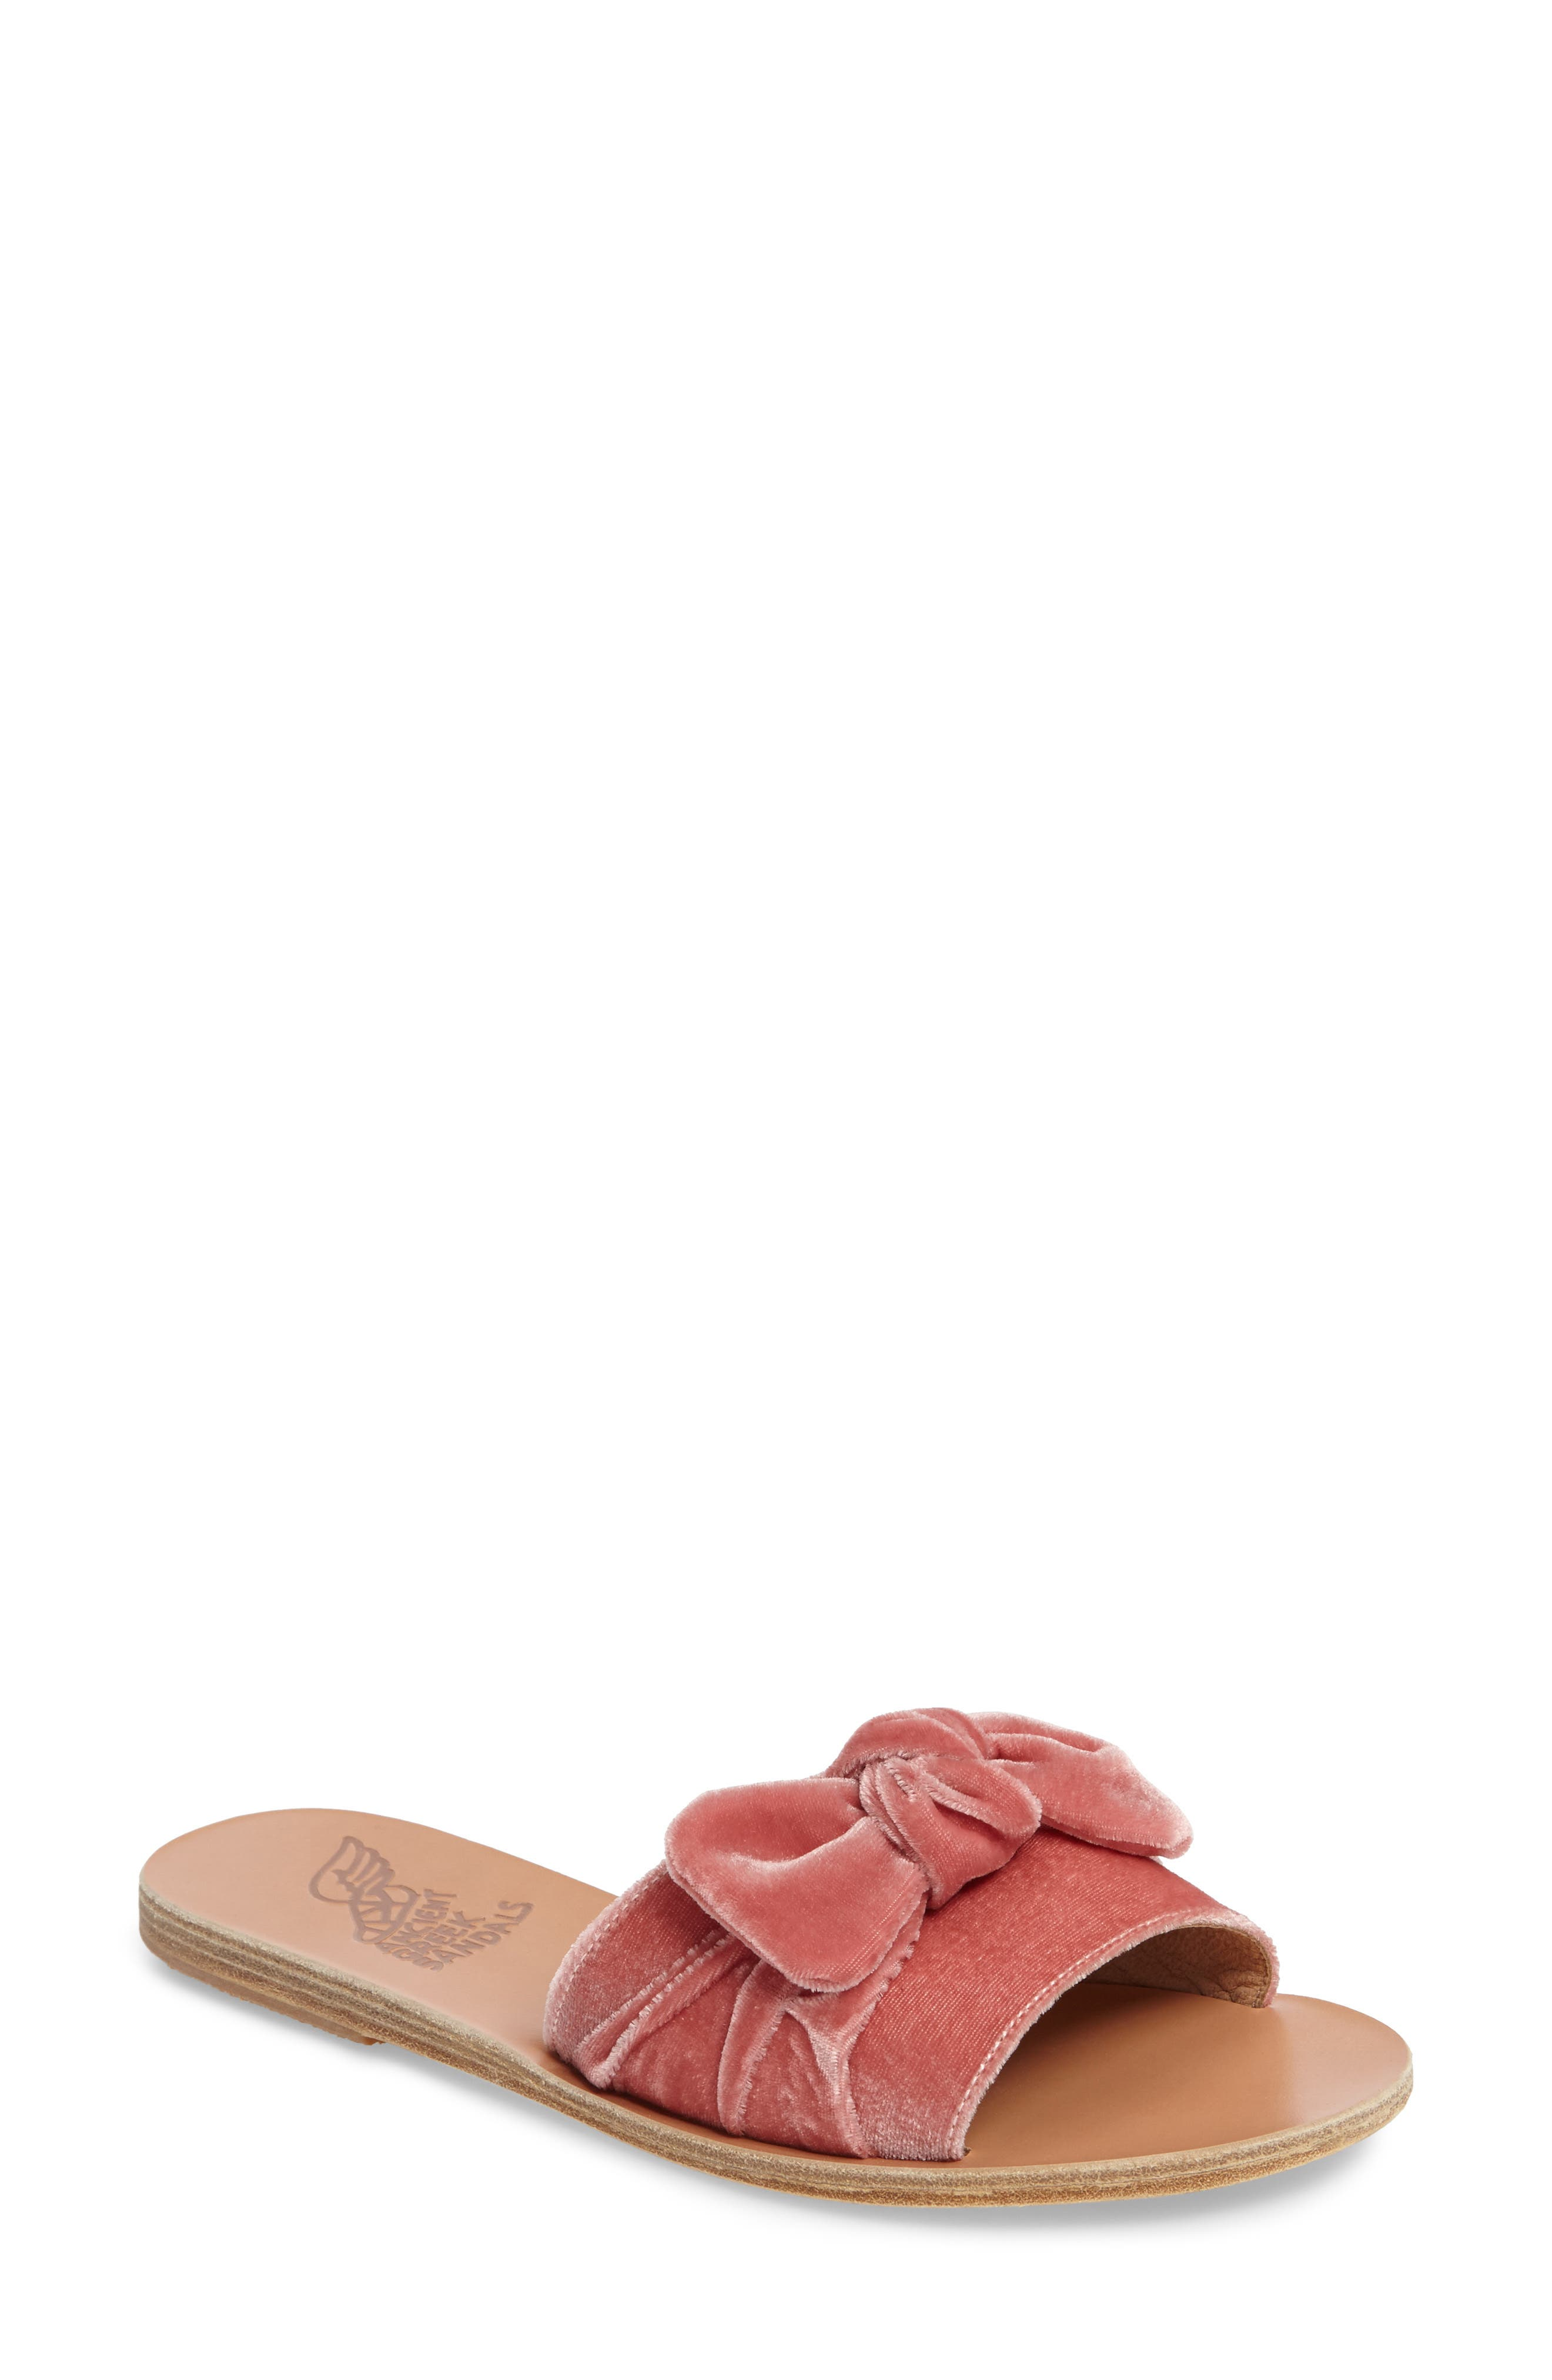 Taygete Bow Slide Sandal,                             Main thumbnail 3, color,